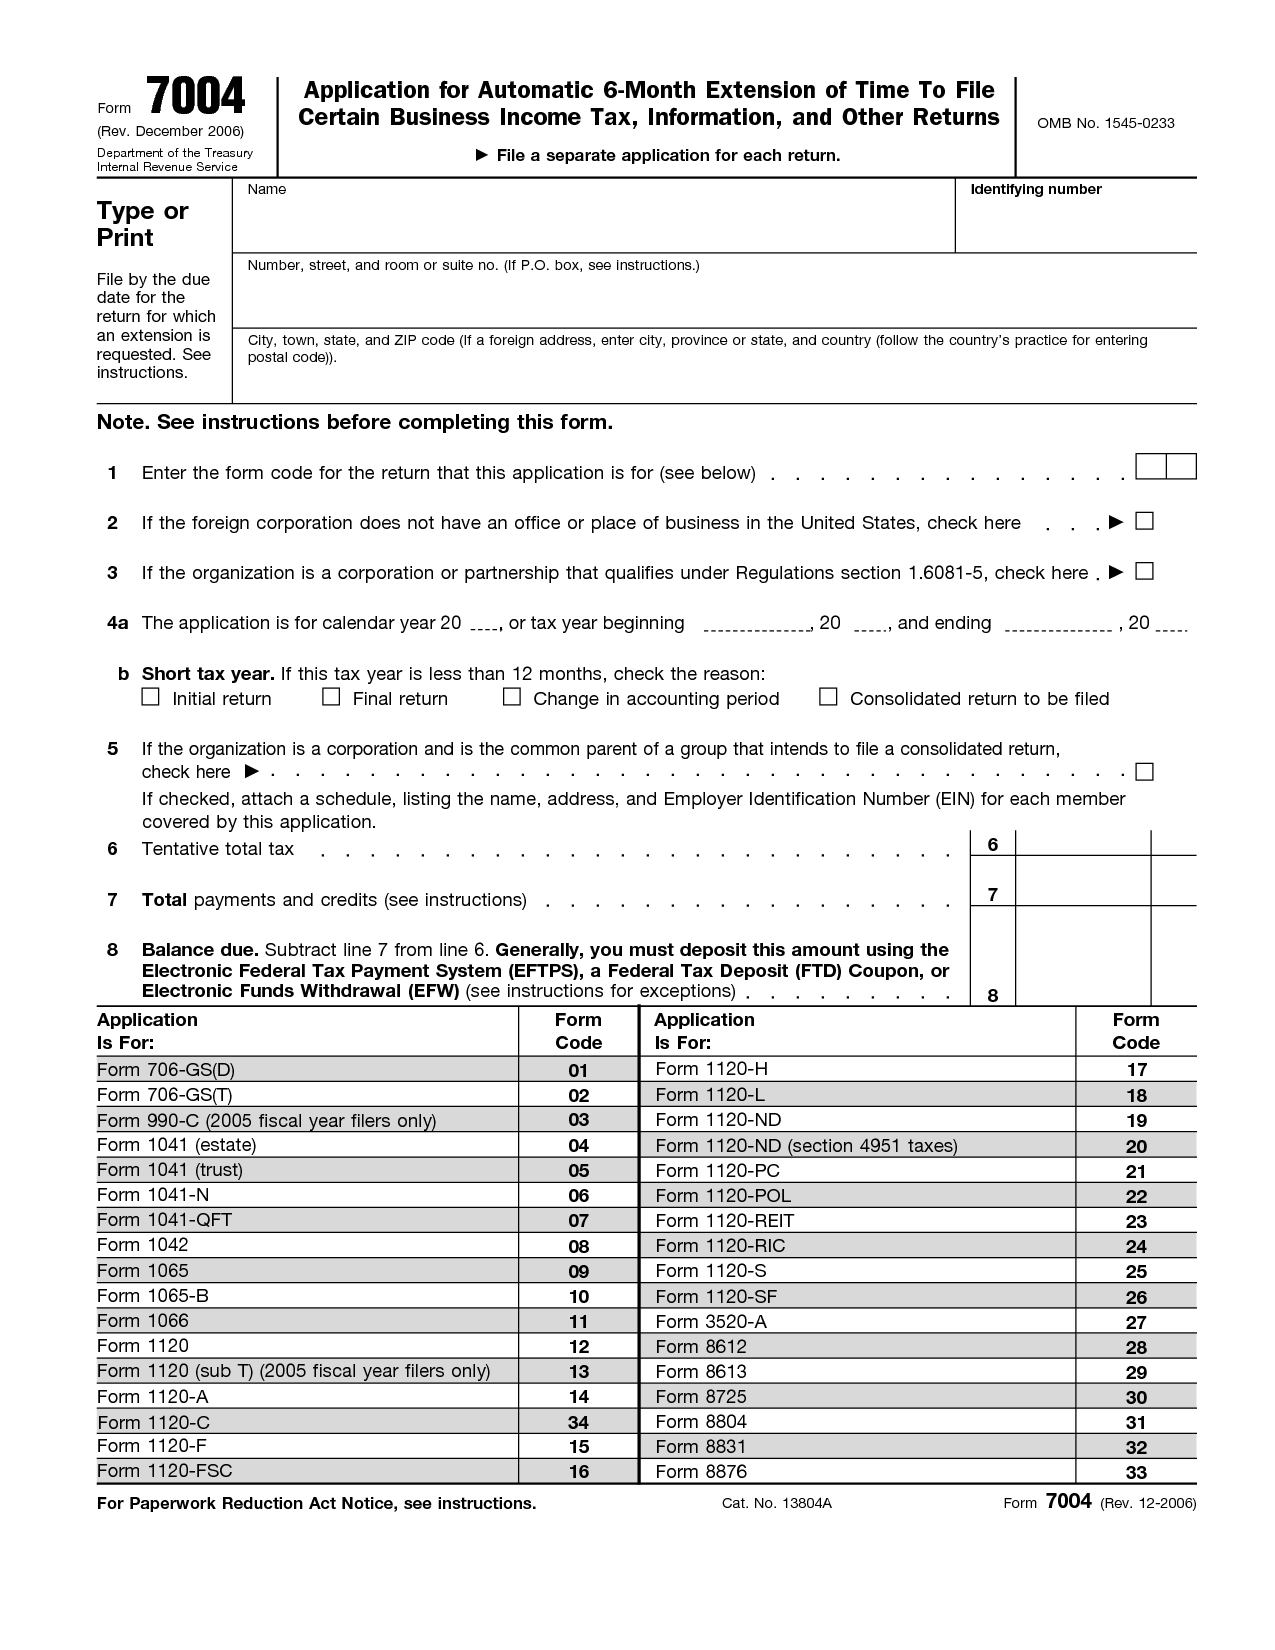 Irs Form 7004 Required To Be E Filed